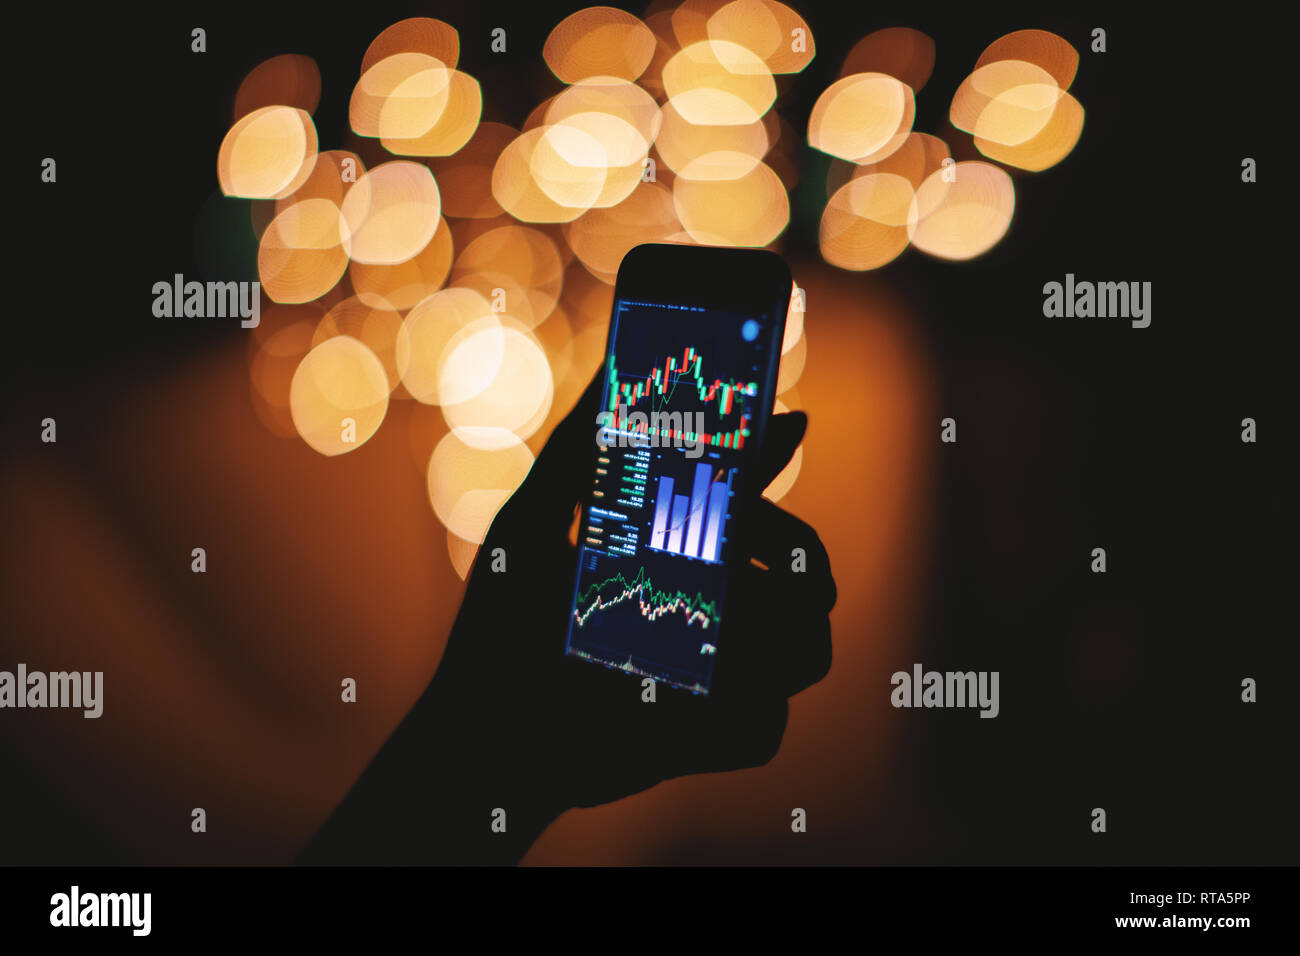 Silhouette of female hand holding smart phone in the dark with stock trading on display with light bokeh blurred background, Mobile business concept Stock Photo